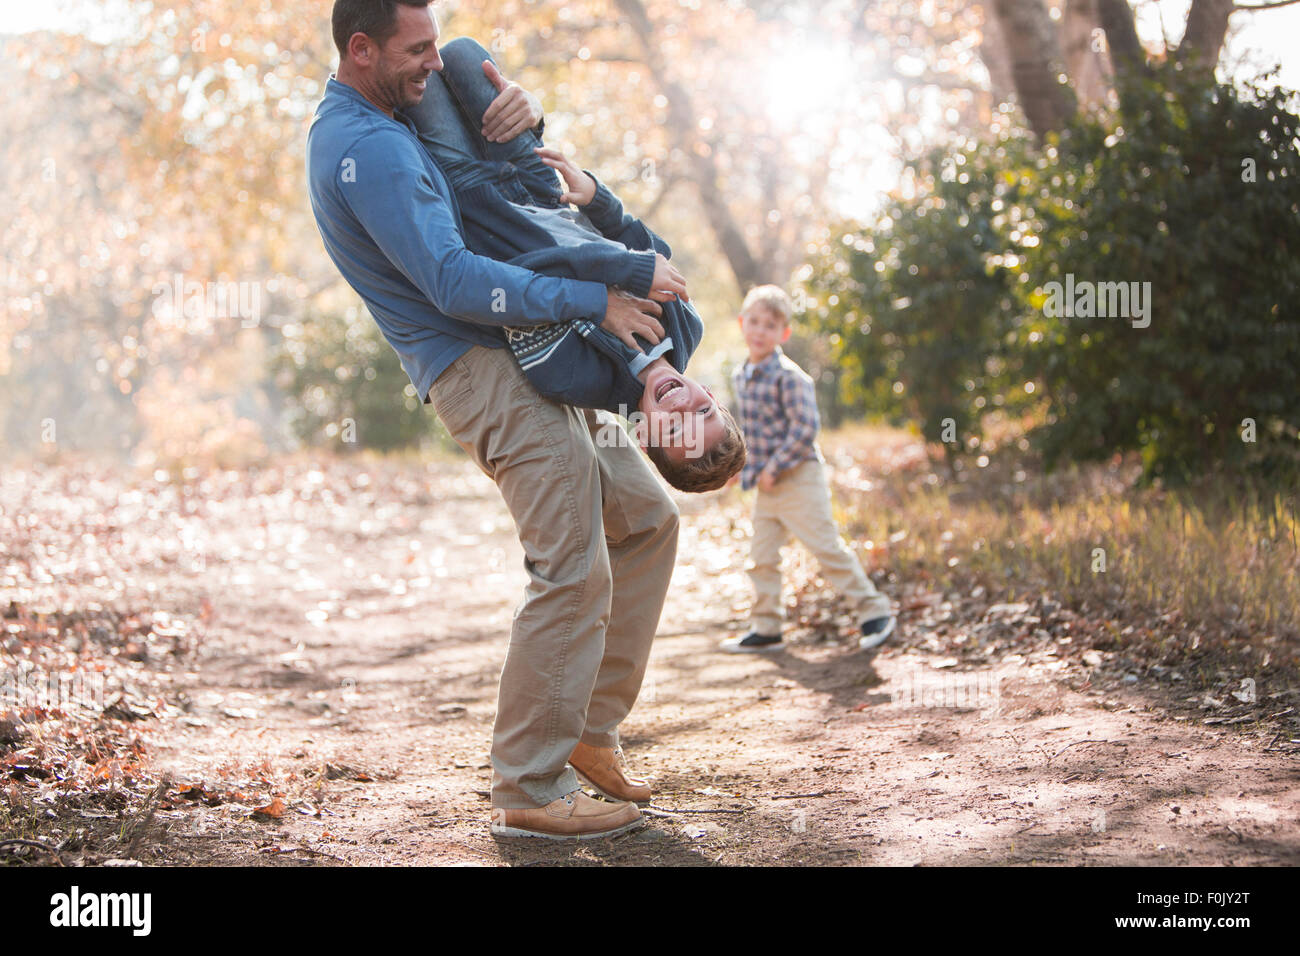 Playful father lifting son upside-down on path in woods - Stock Image